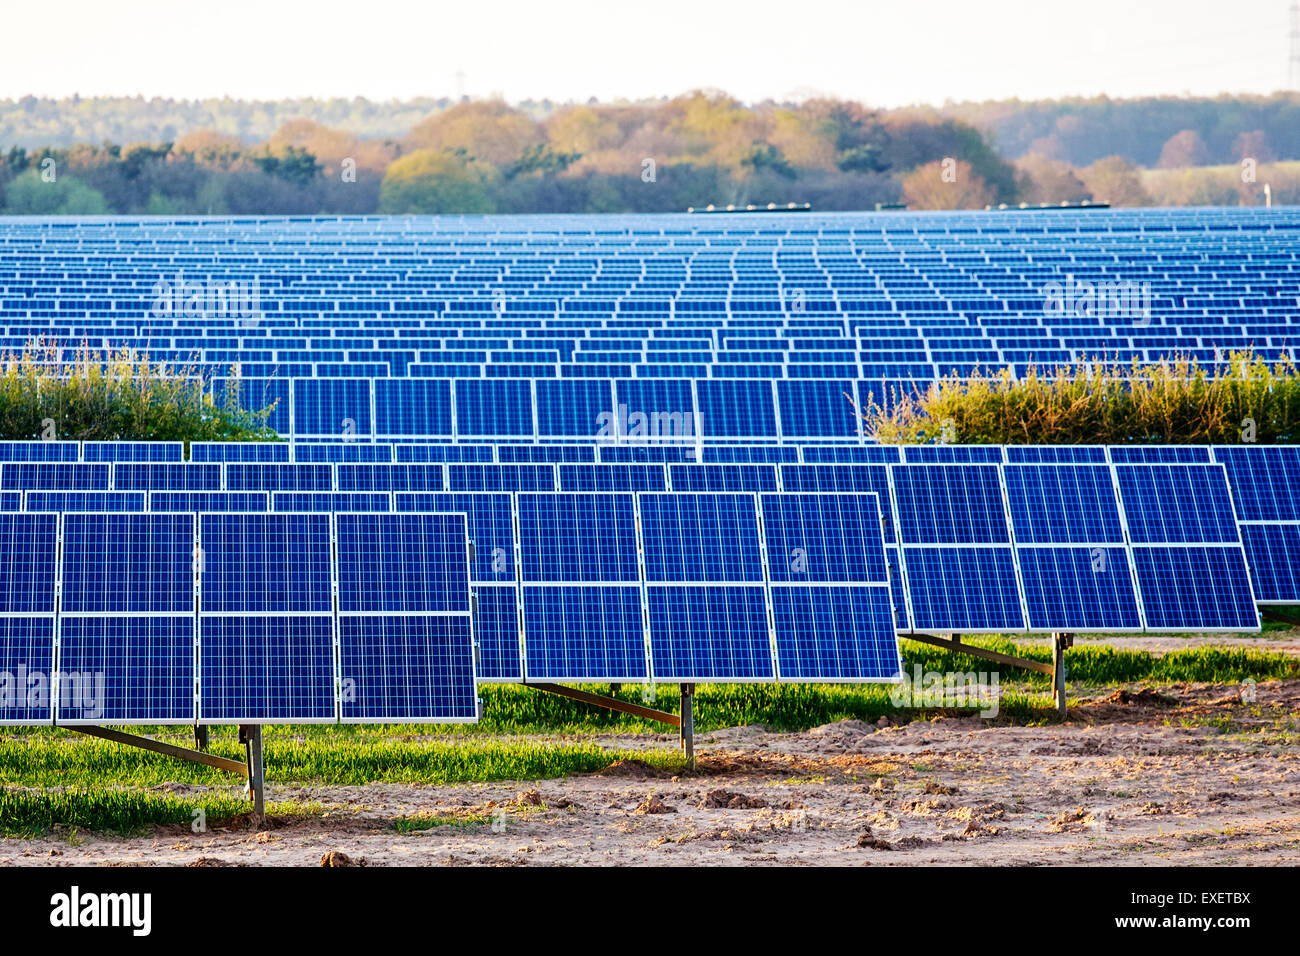 view of a solar power generation plant in a fileld in England - Stock Image